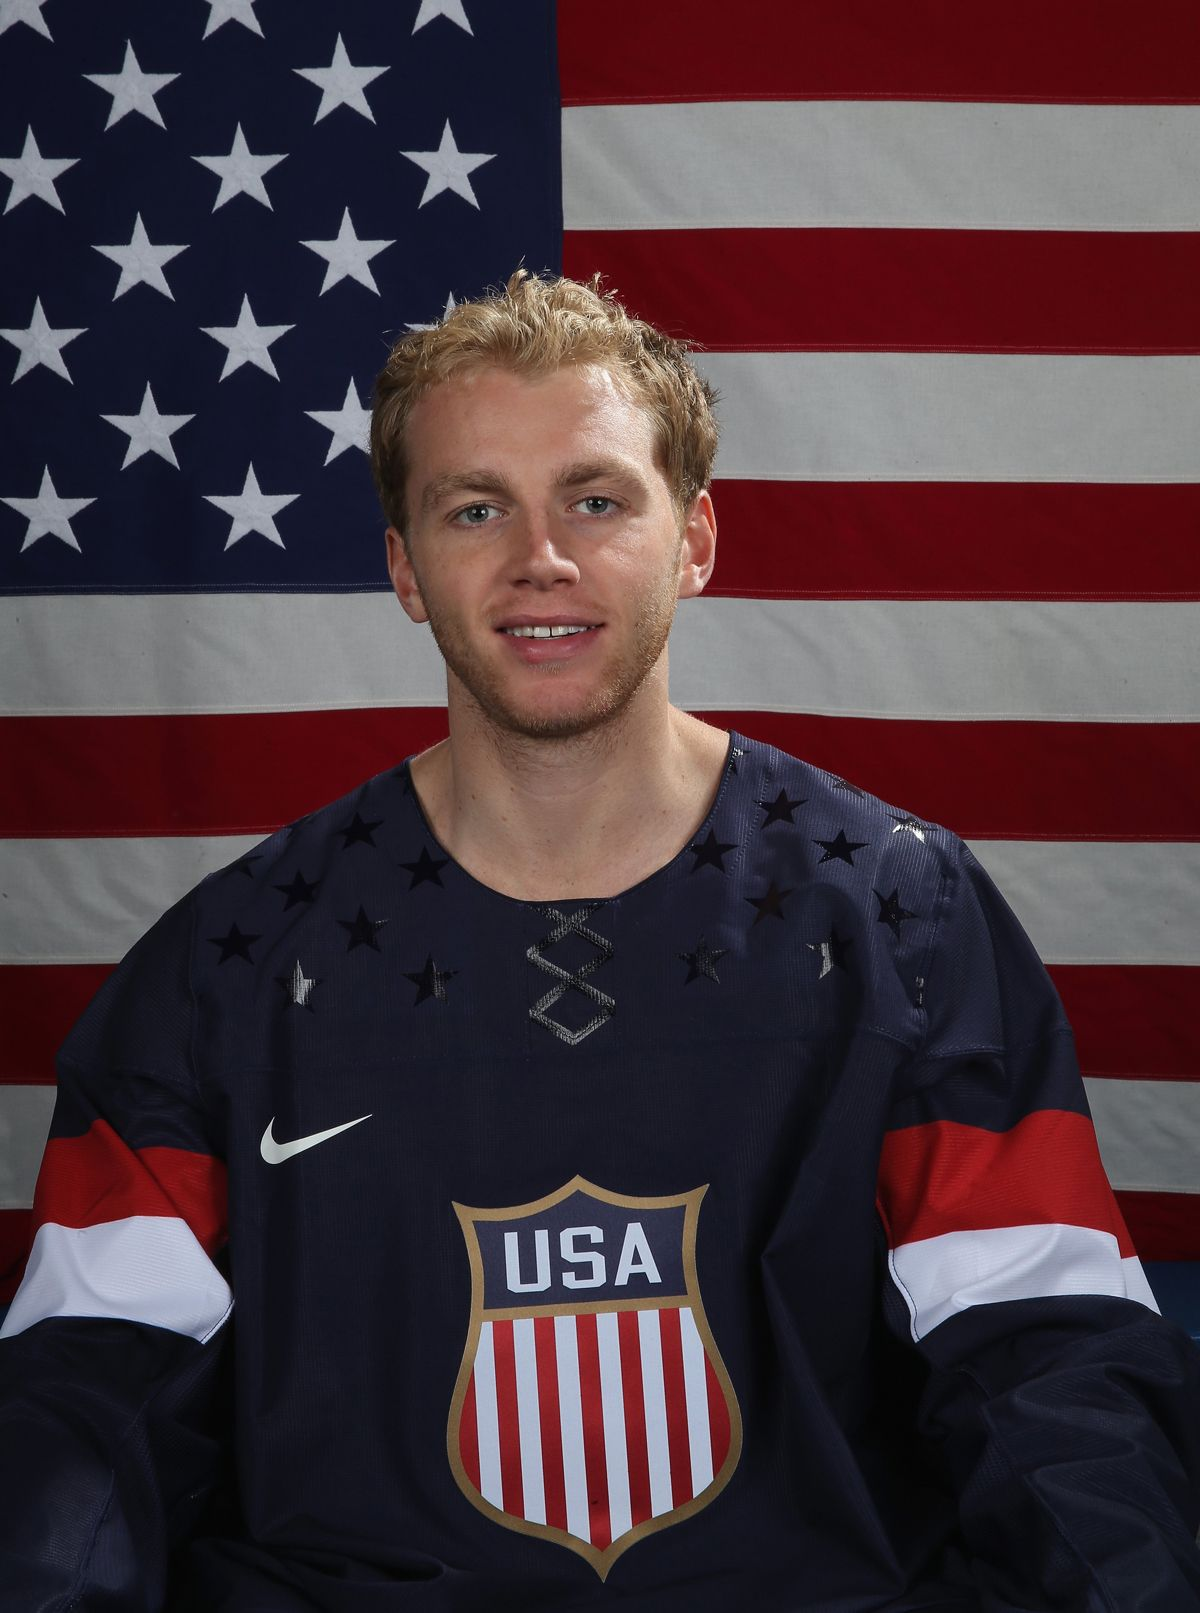 Patriotic Kane Of Chicago Blackhawks Wearing The Usa